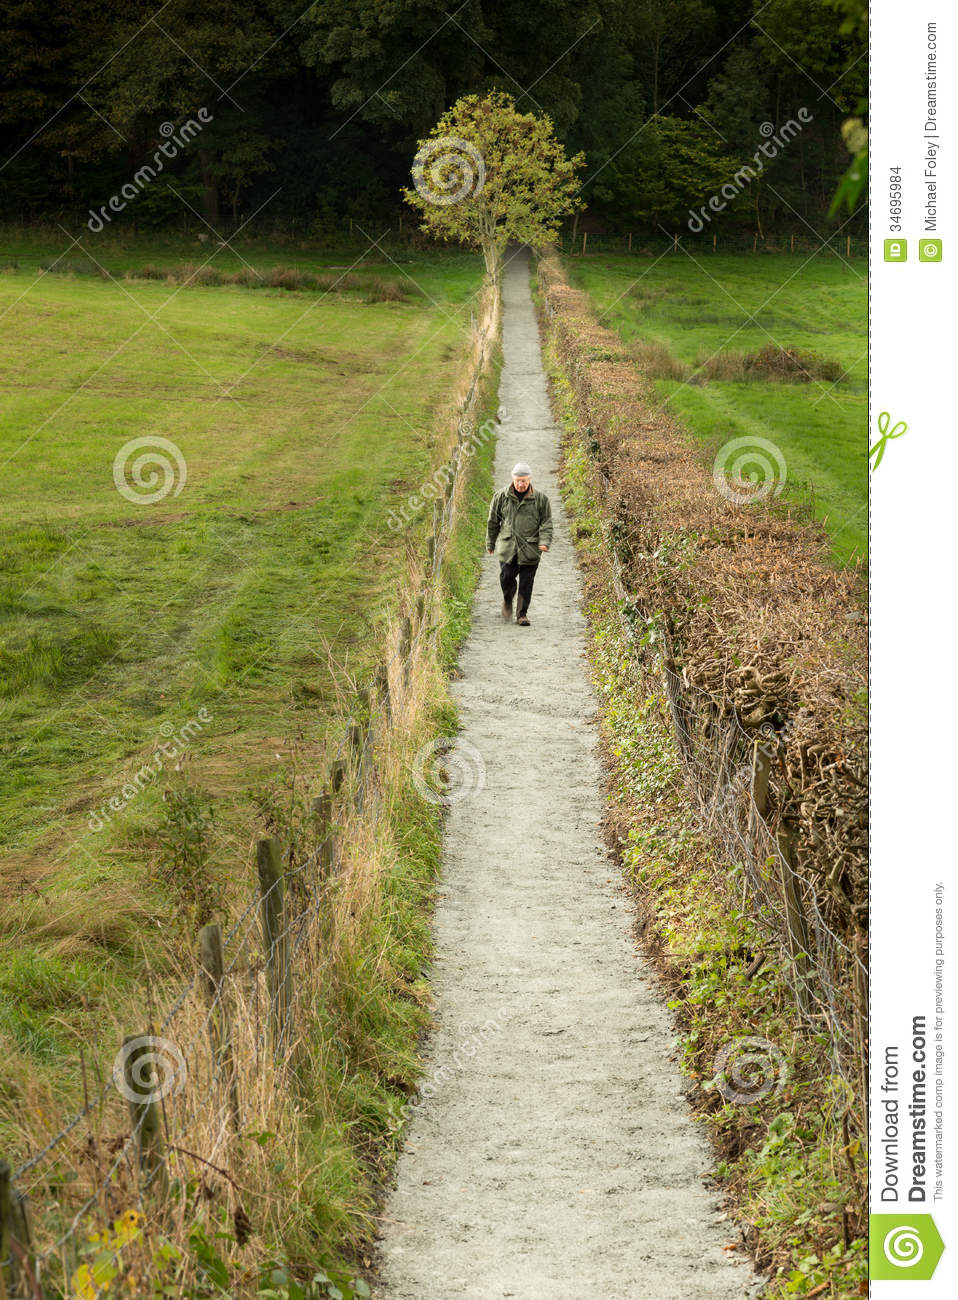 http://thumbs.dreamstime.com/z/straight-narrow-path-lone-senior-citizen-walking-briskly-along-34695984.jpg